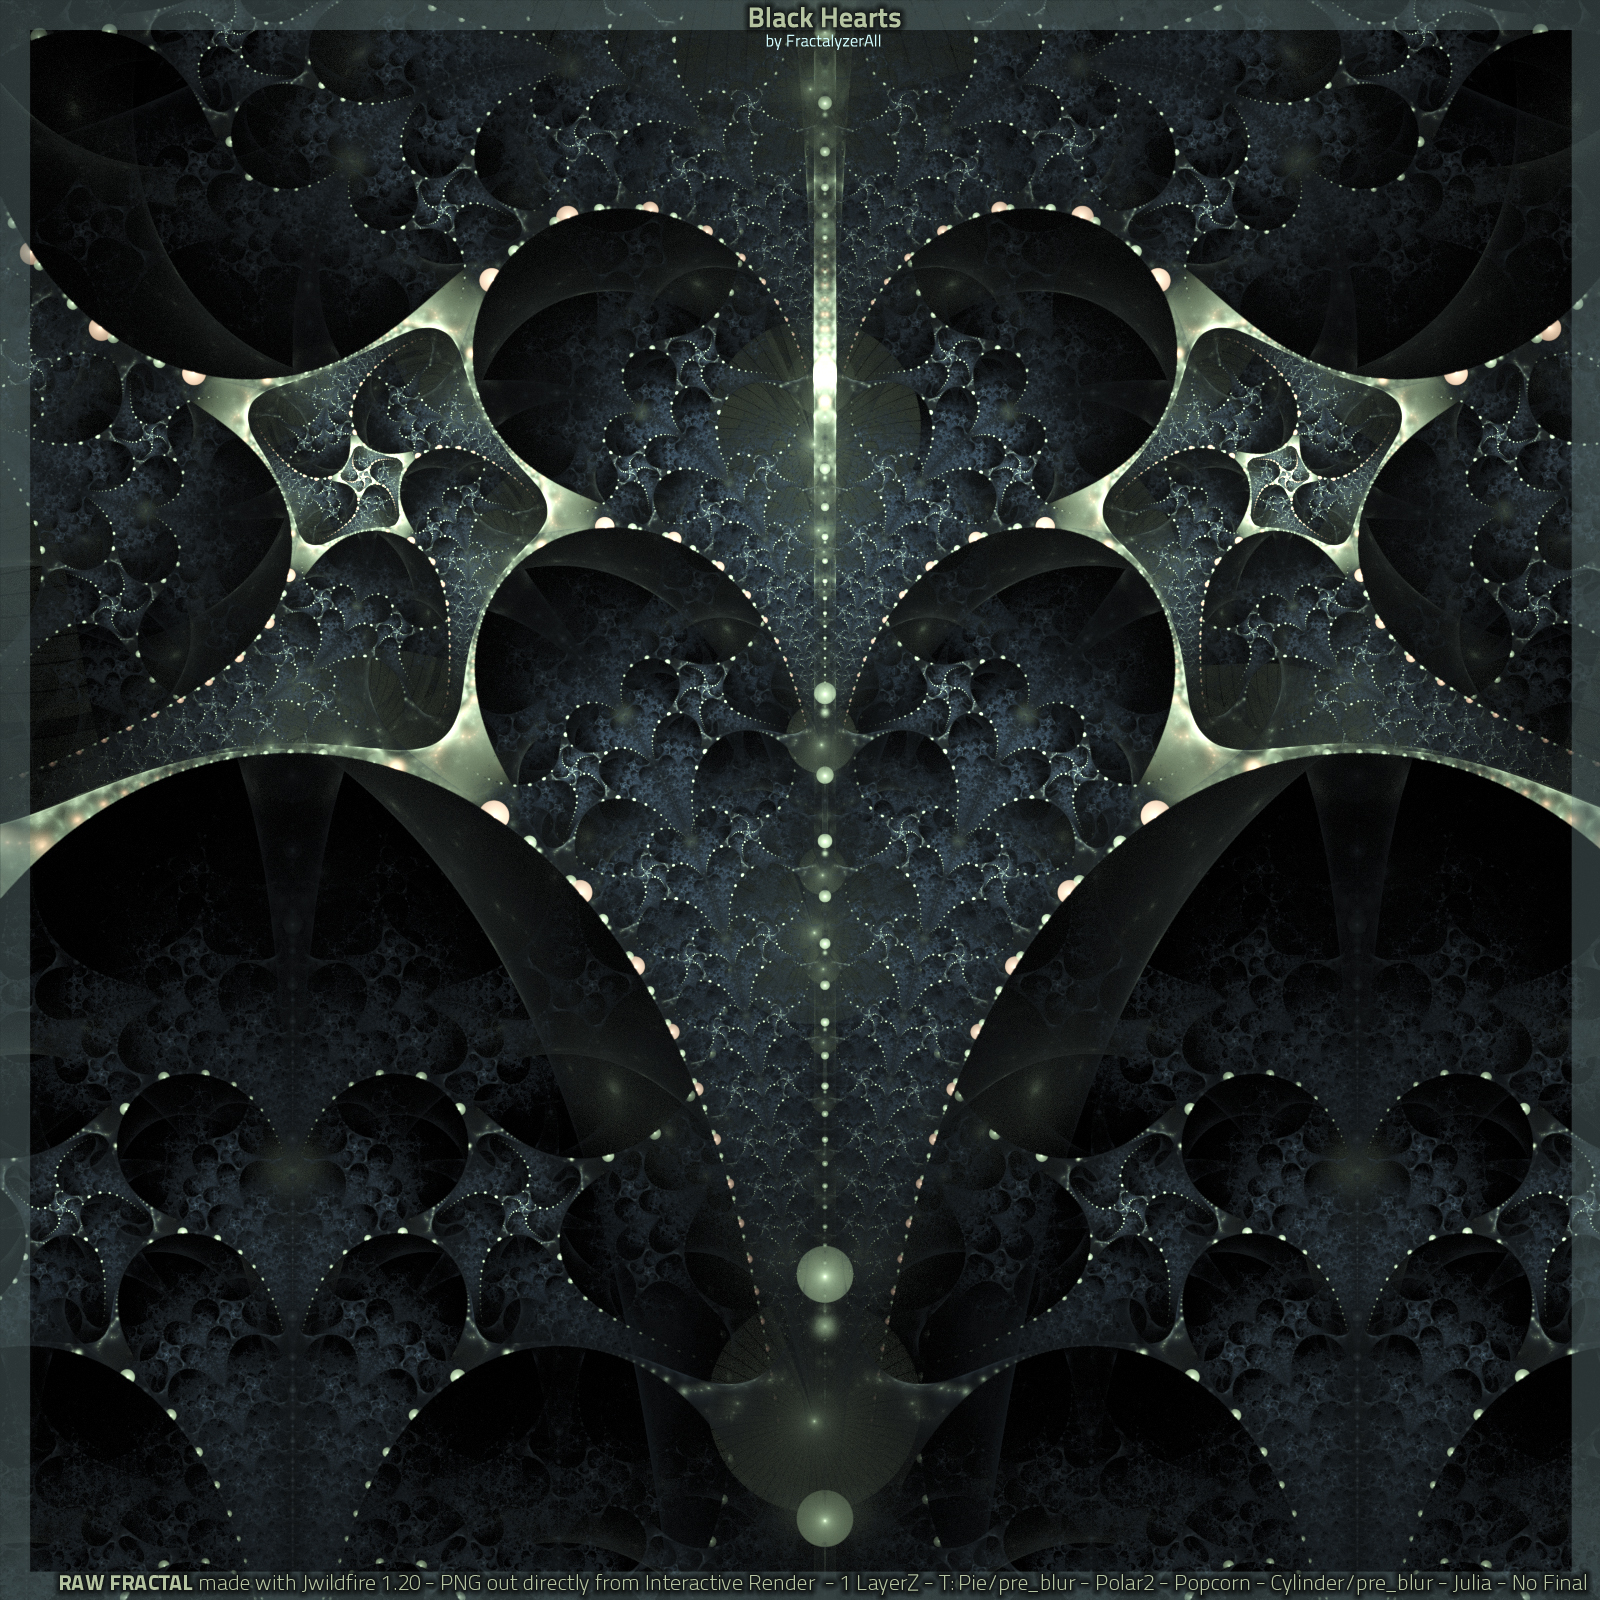 Black Hearts by fractalyzerall